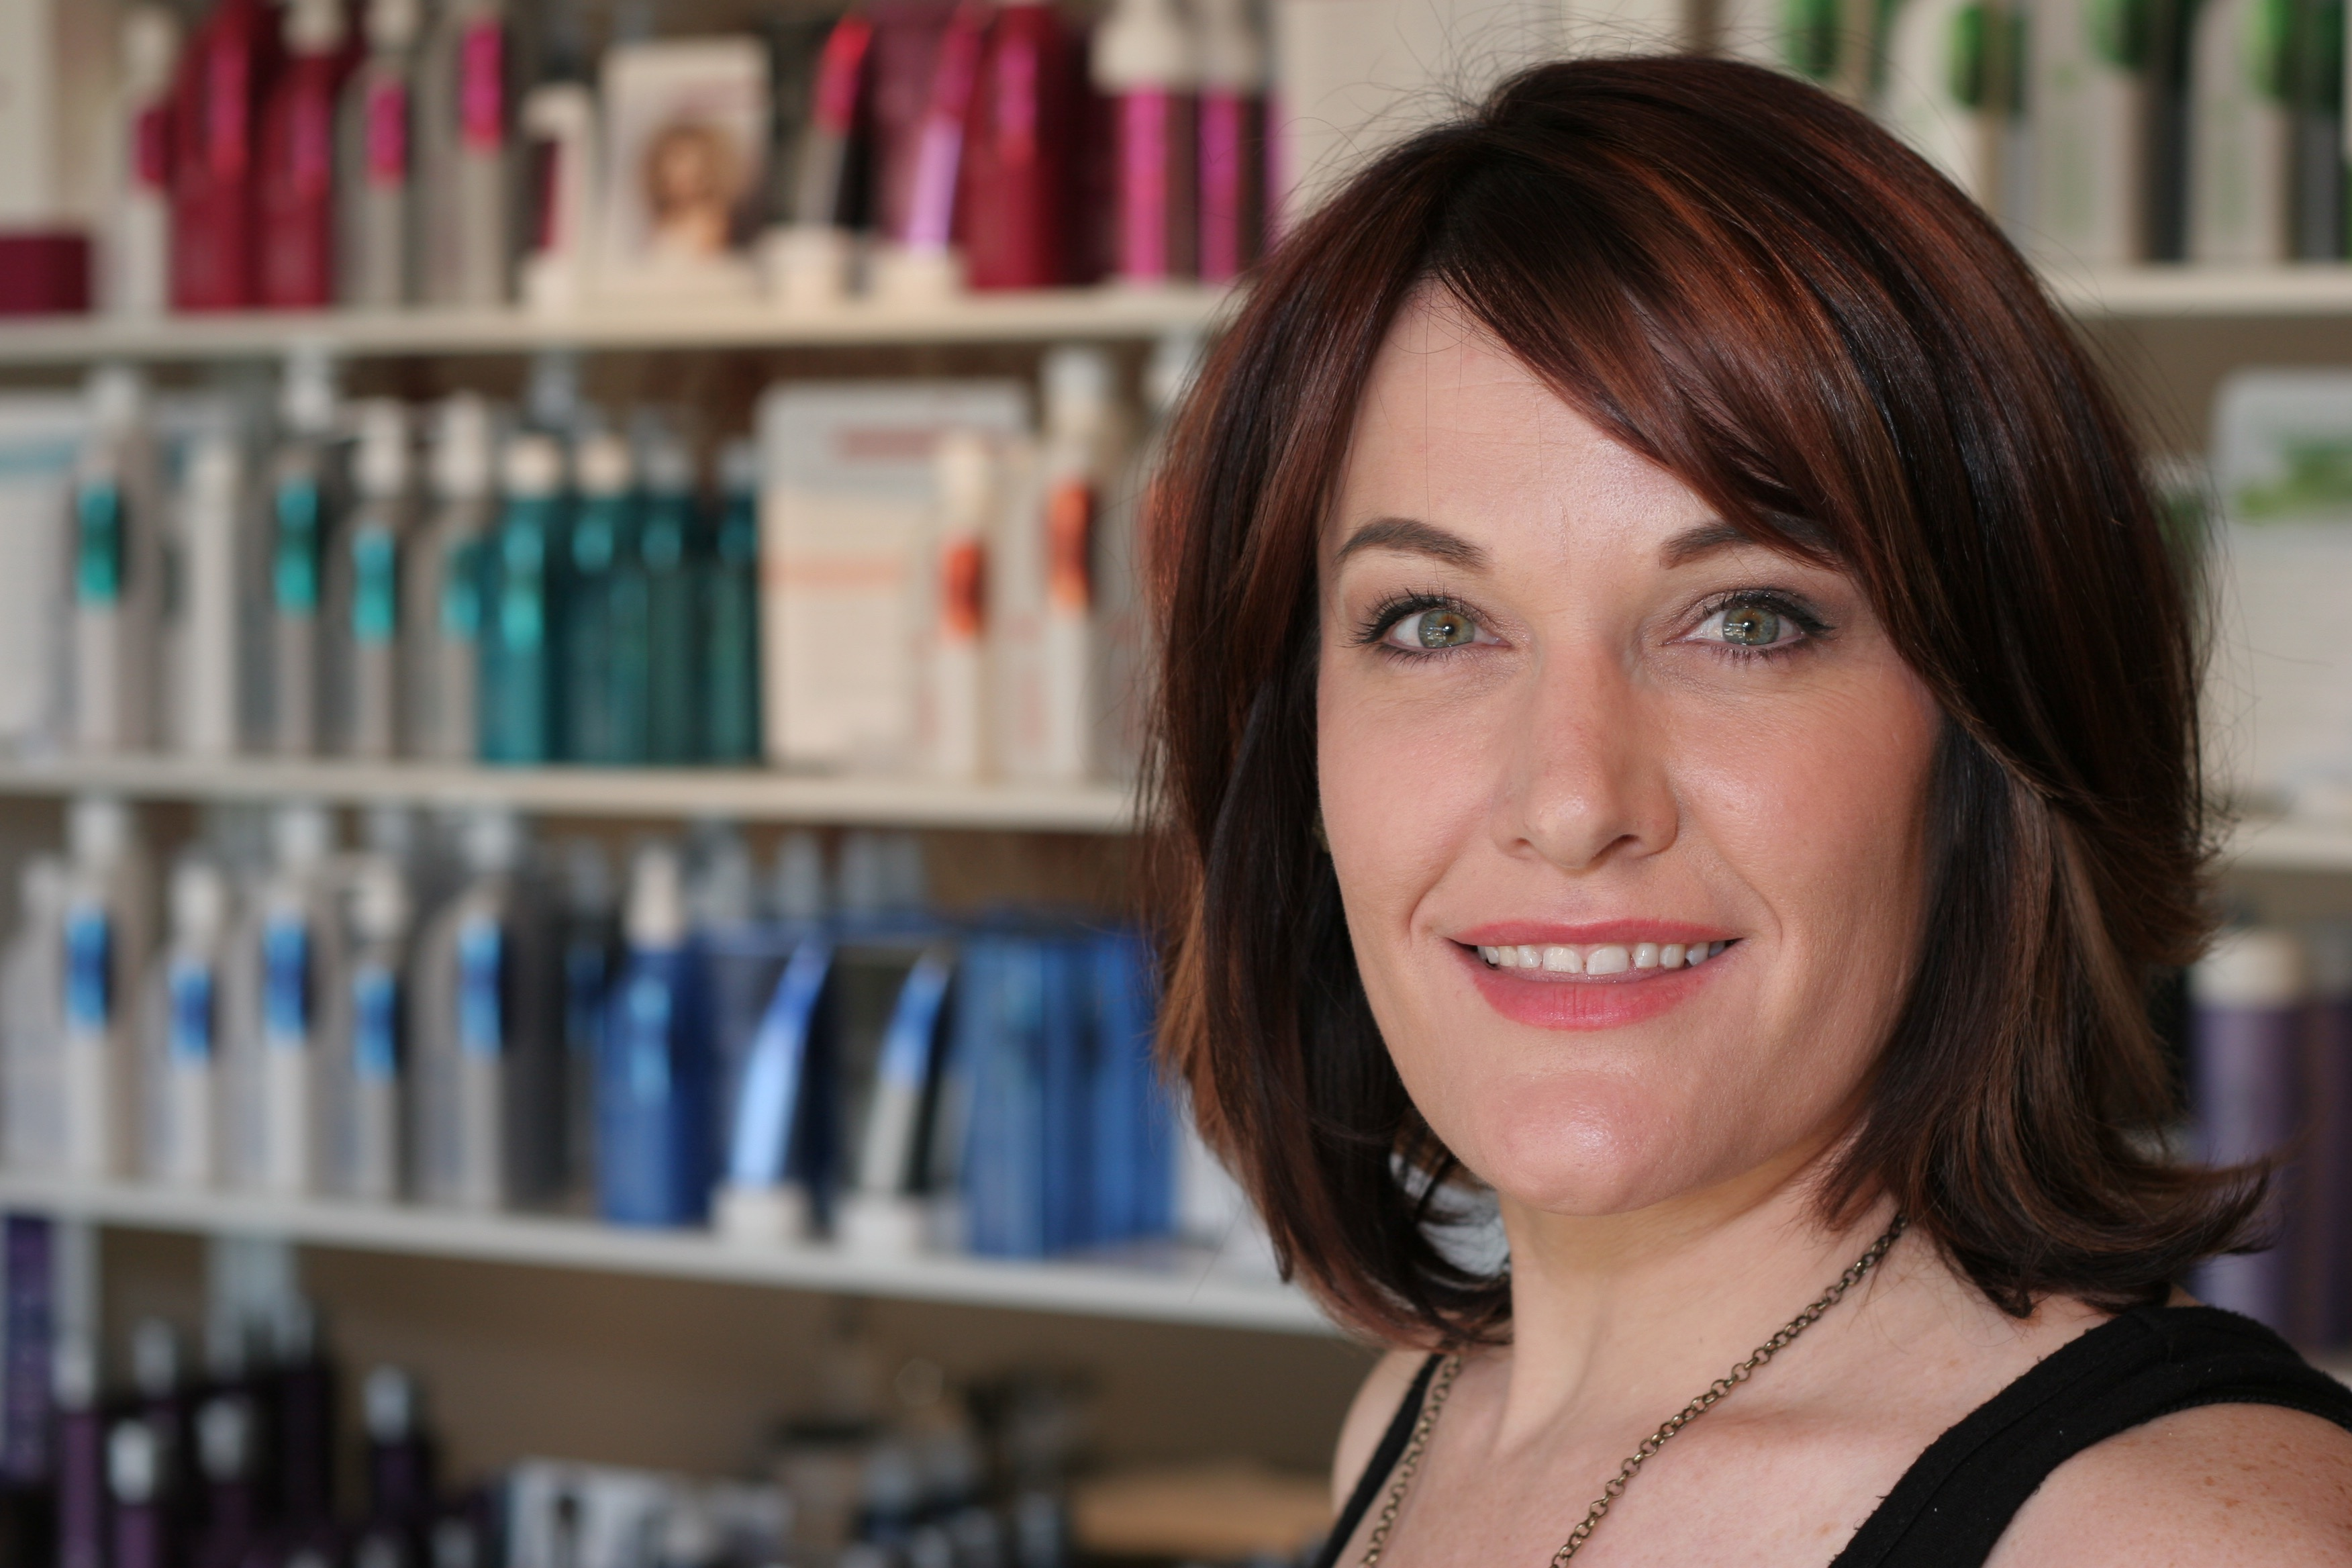 Ivy Overby, owner of Emerge Modern Salon and Spa in Denver, CO.